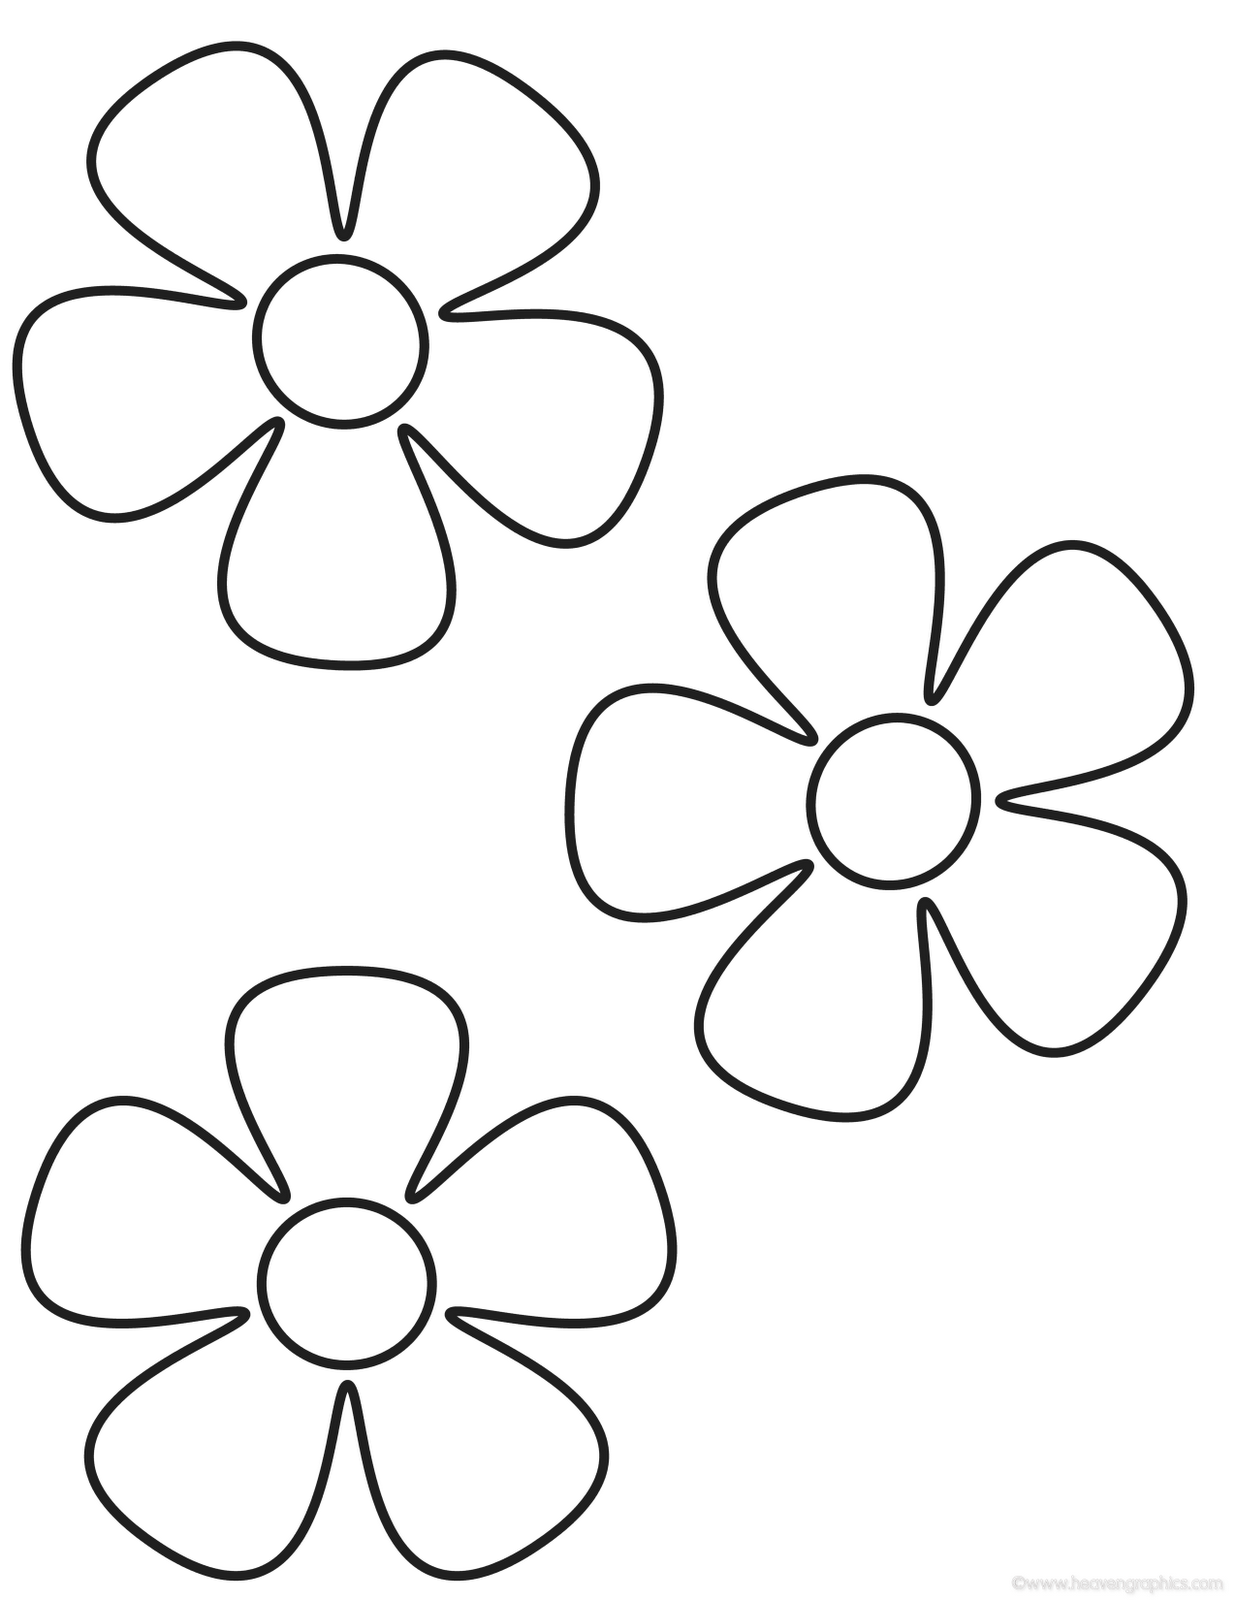 Flower Coloring Pages 1 And For Preschoolers